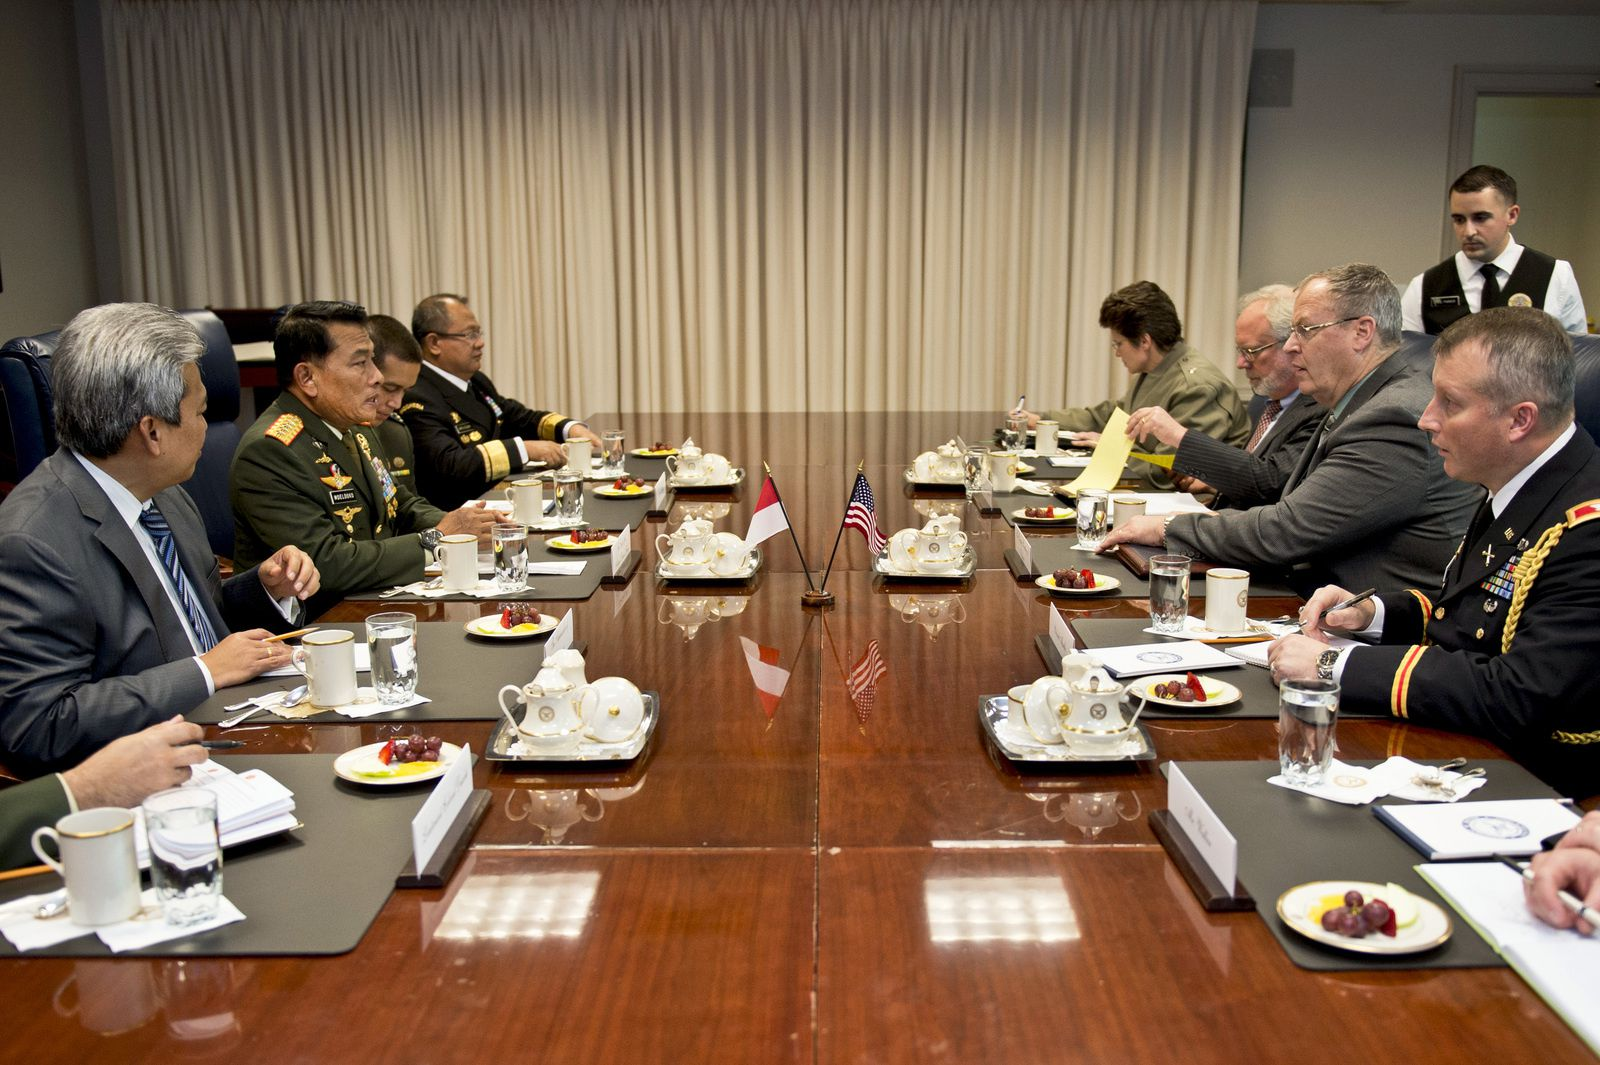 Work, Indonesian Military Leader Discuss Regional Stability